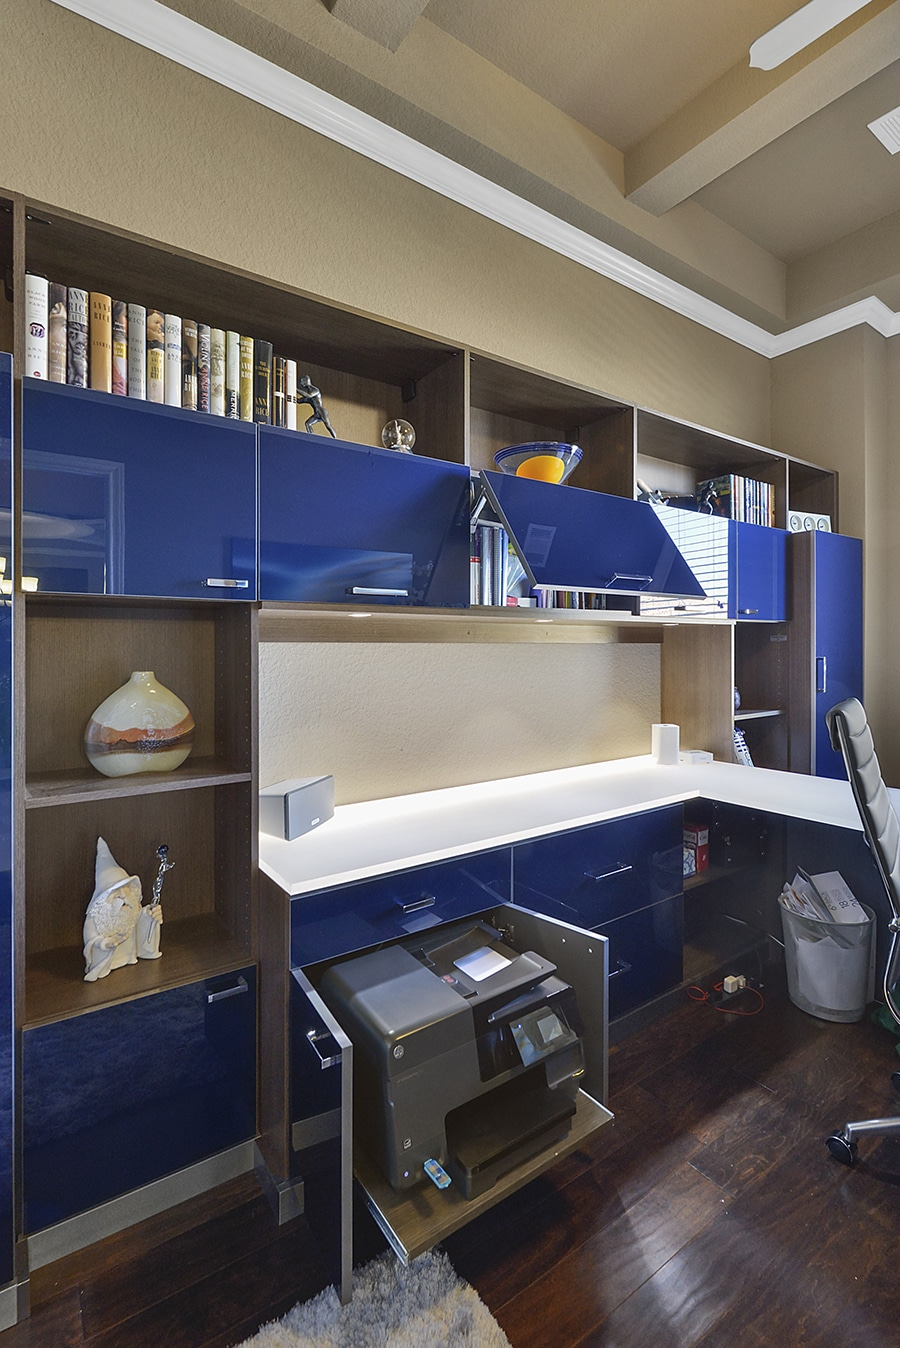 Slide out drawer in home office credit CM Closet Design built by California Closets | Innovate Home org | #HomeOffice #StorageSpace #DesignerOffice